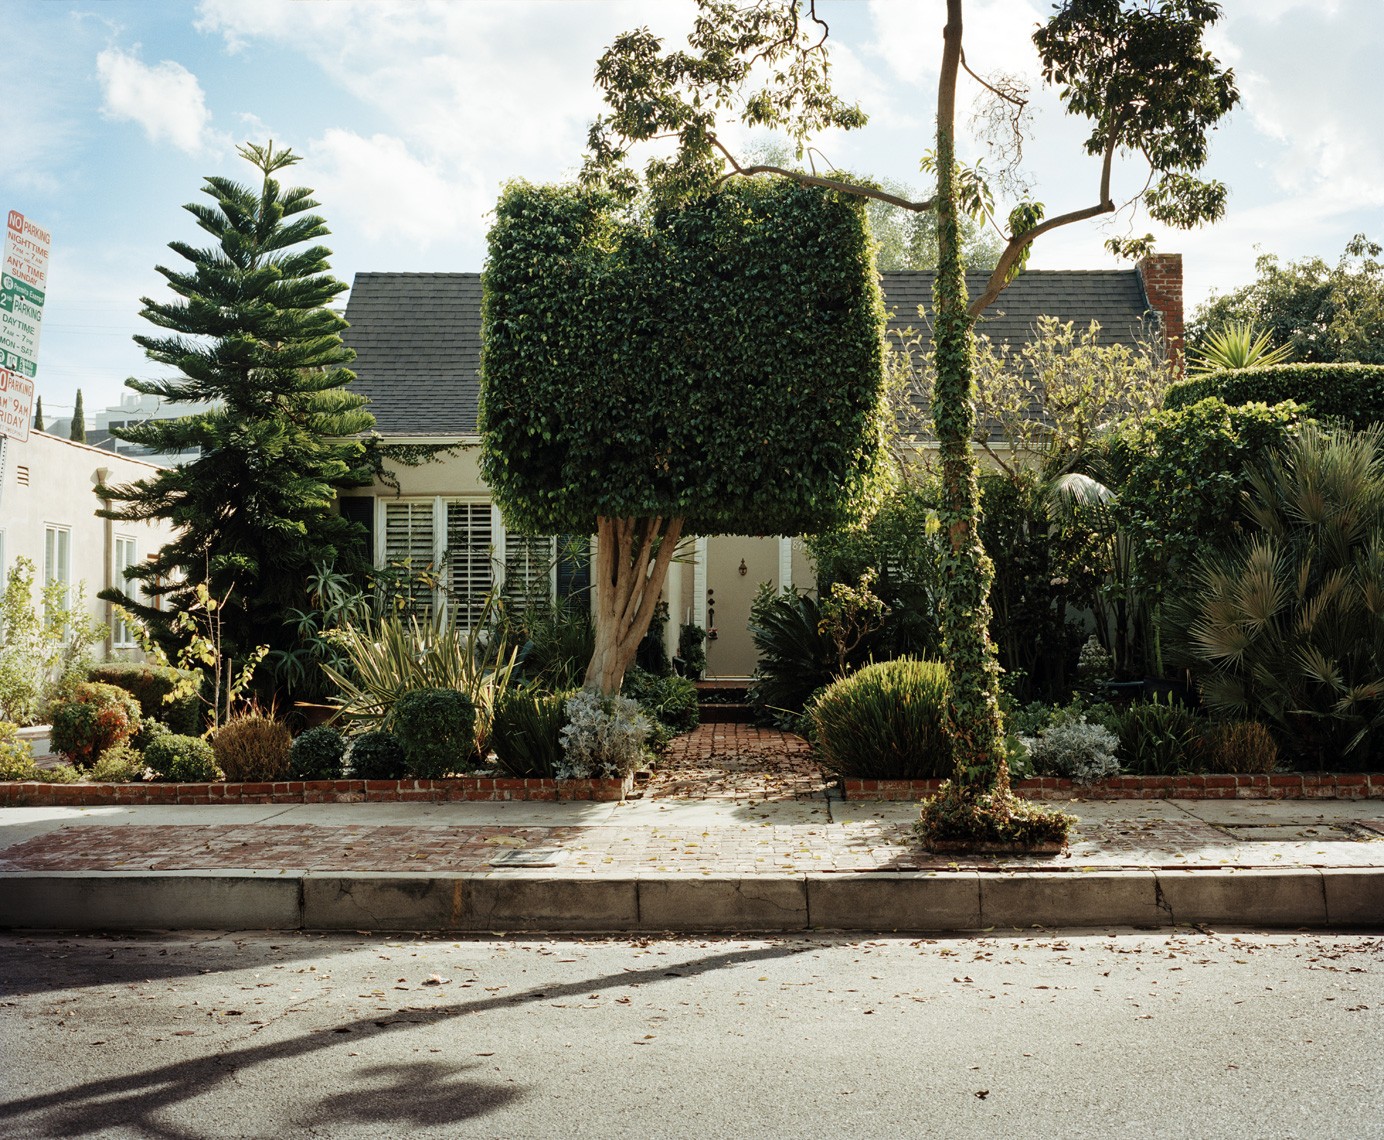 Shrubbery | Los Angeles